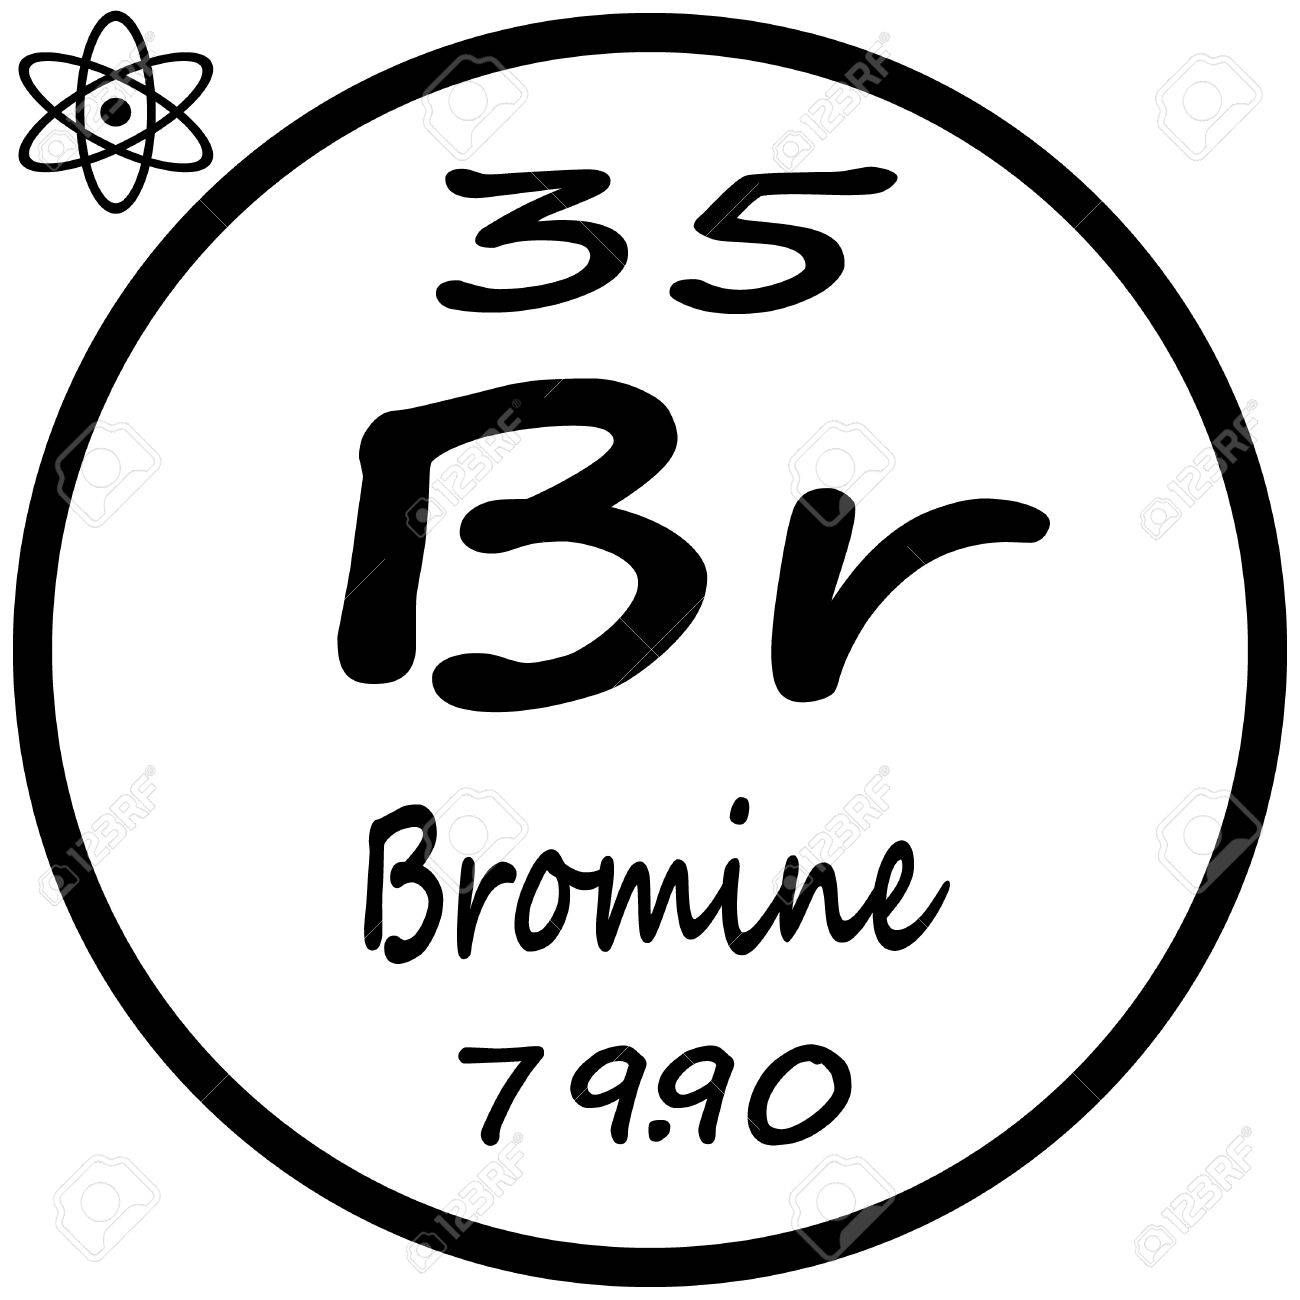 Periodic table of elements bromine royalty free cliparts vectors periodic table of elements bromine stock vector 53482488 buycottarizona Choice Image